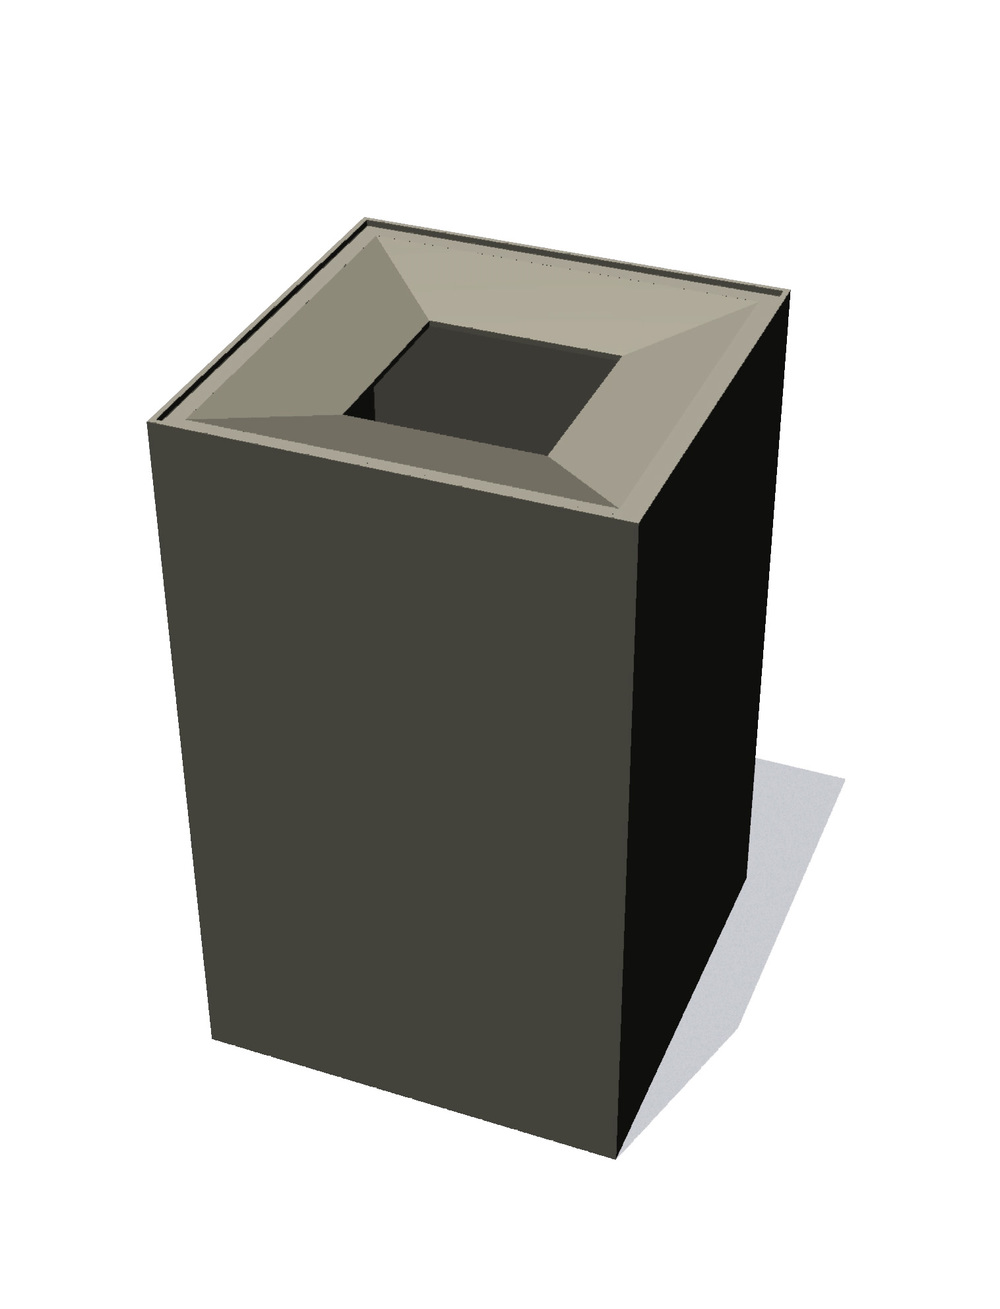 trash can 6.jpg